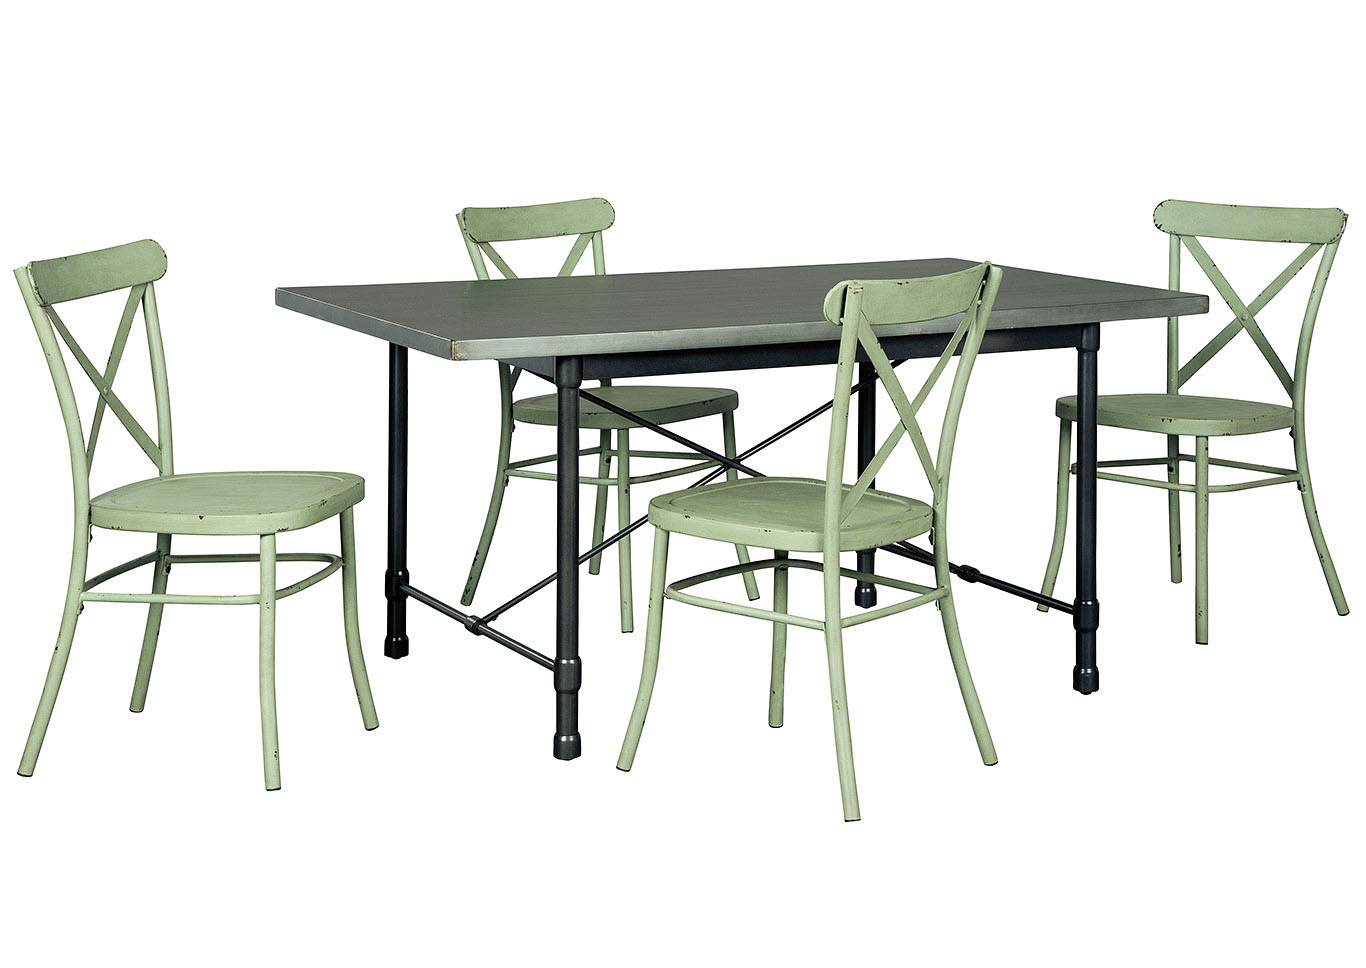 langlois furniture. Minnona Aged Steel Rectangular Dining Table W/4 Light Green Side Chairs,Signature Design Langlois Furniture